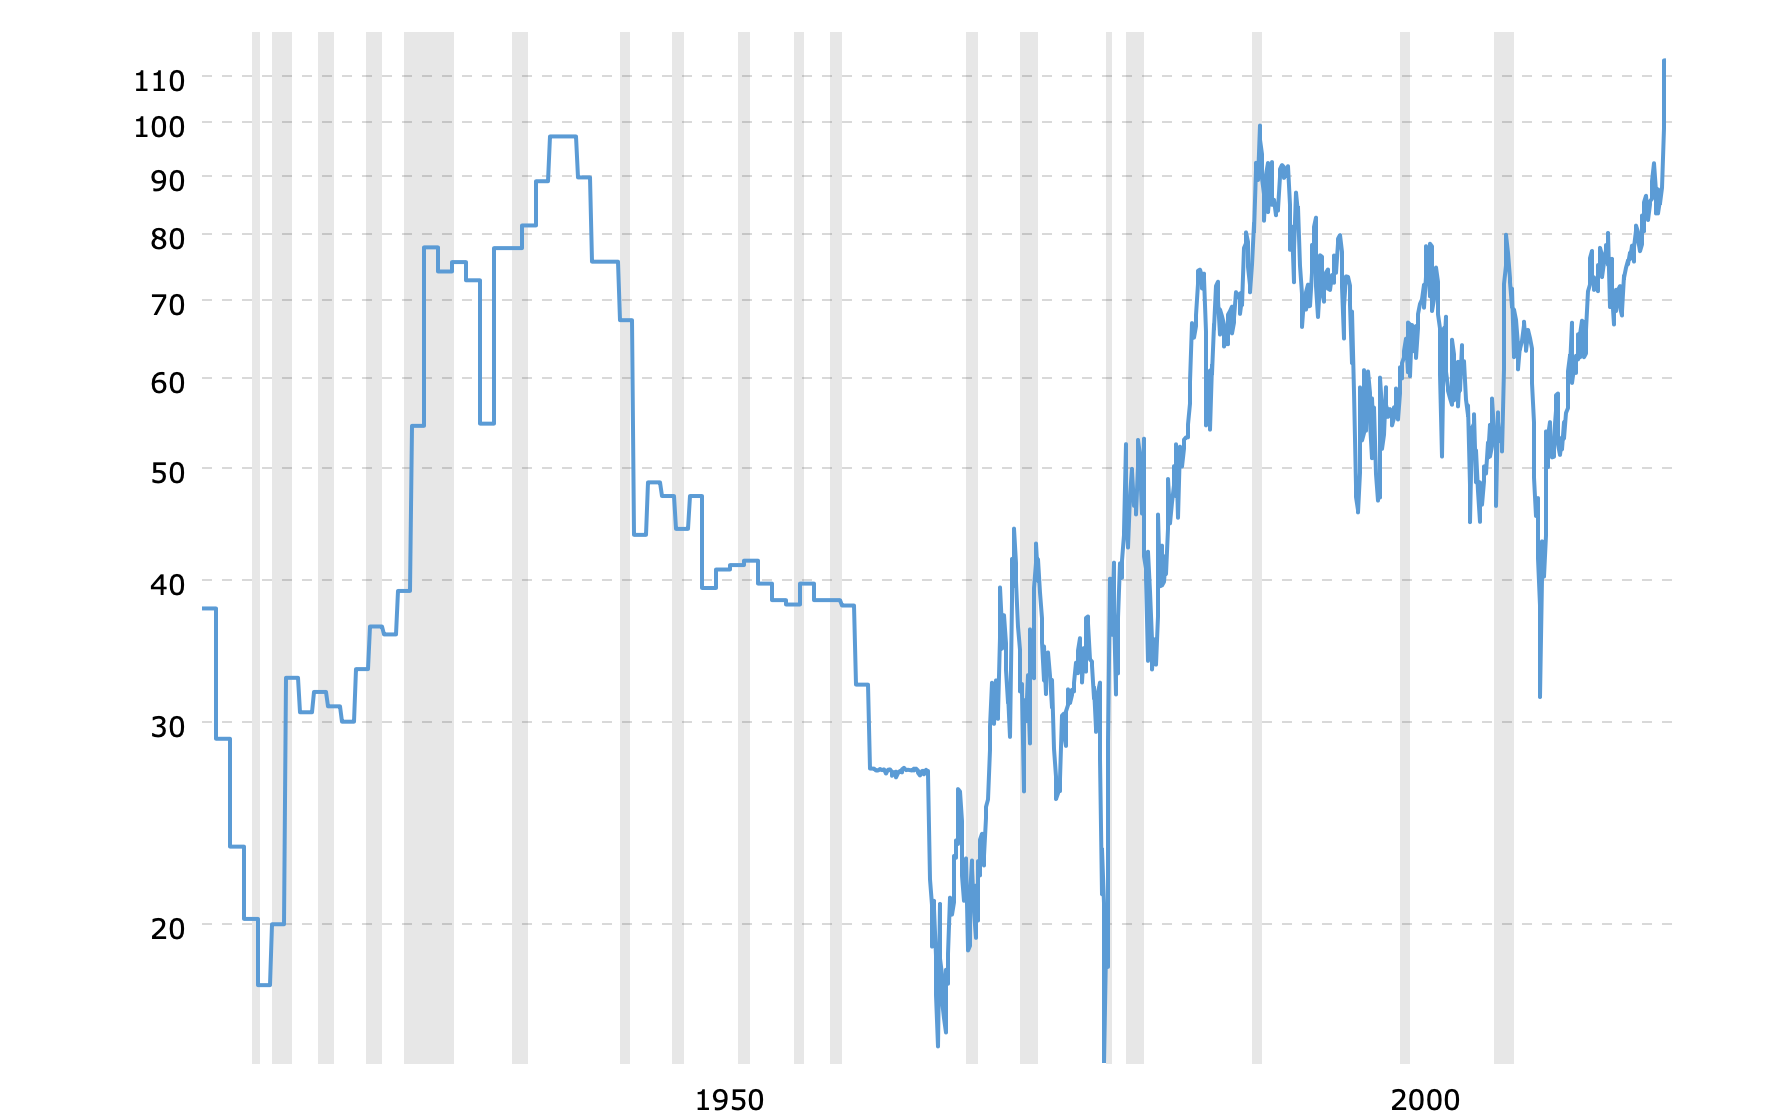 gold-to-silver-ratio-2020-04-28-macrotrends